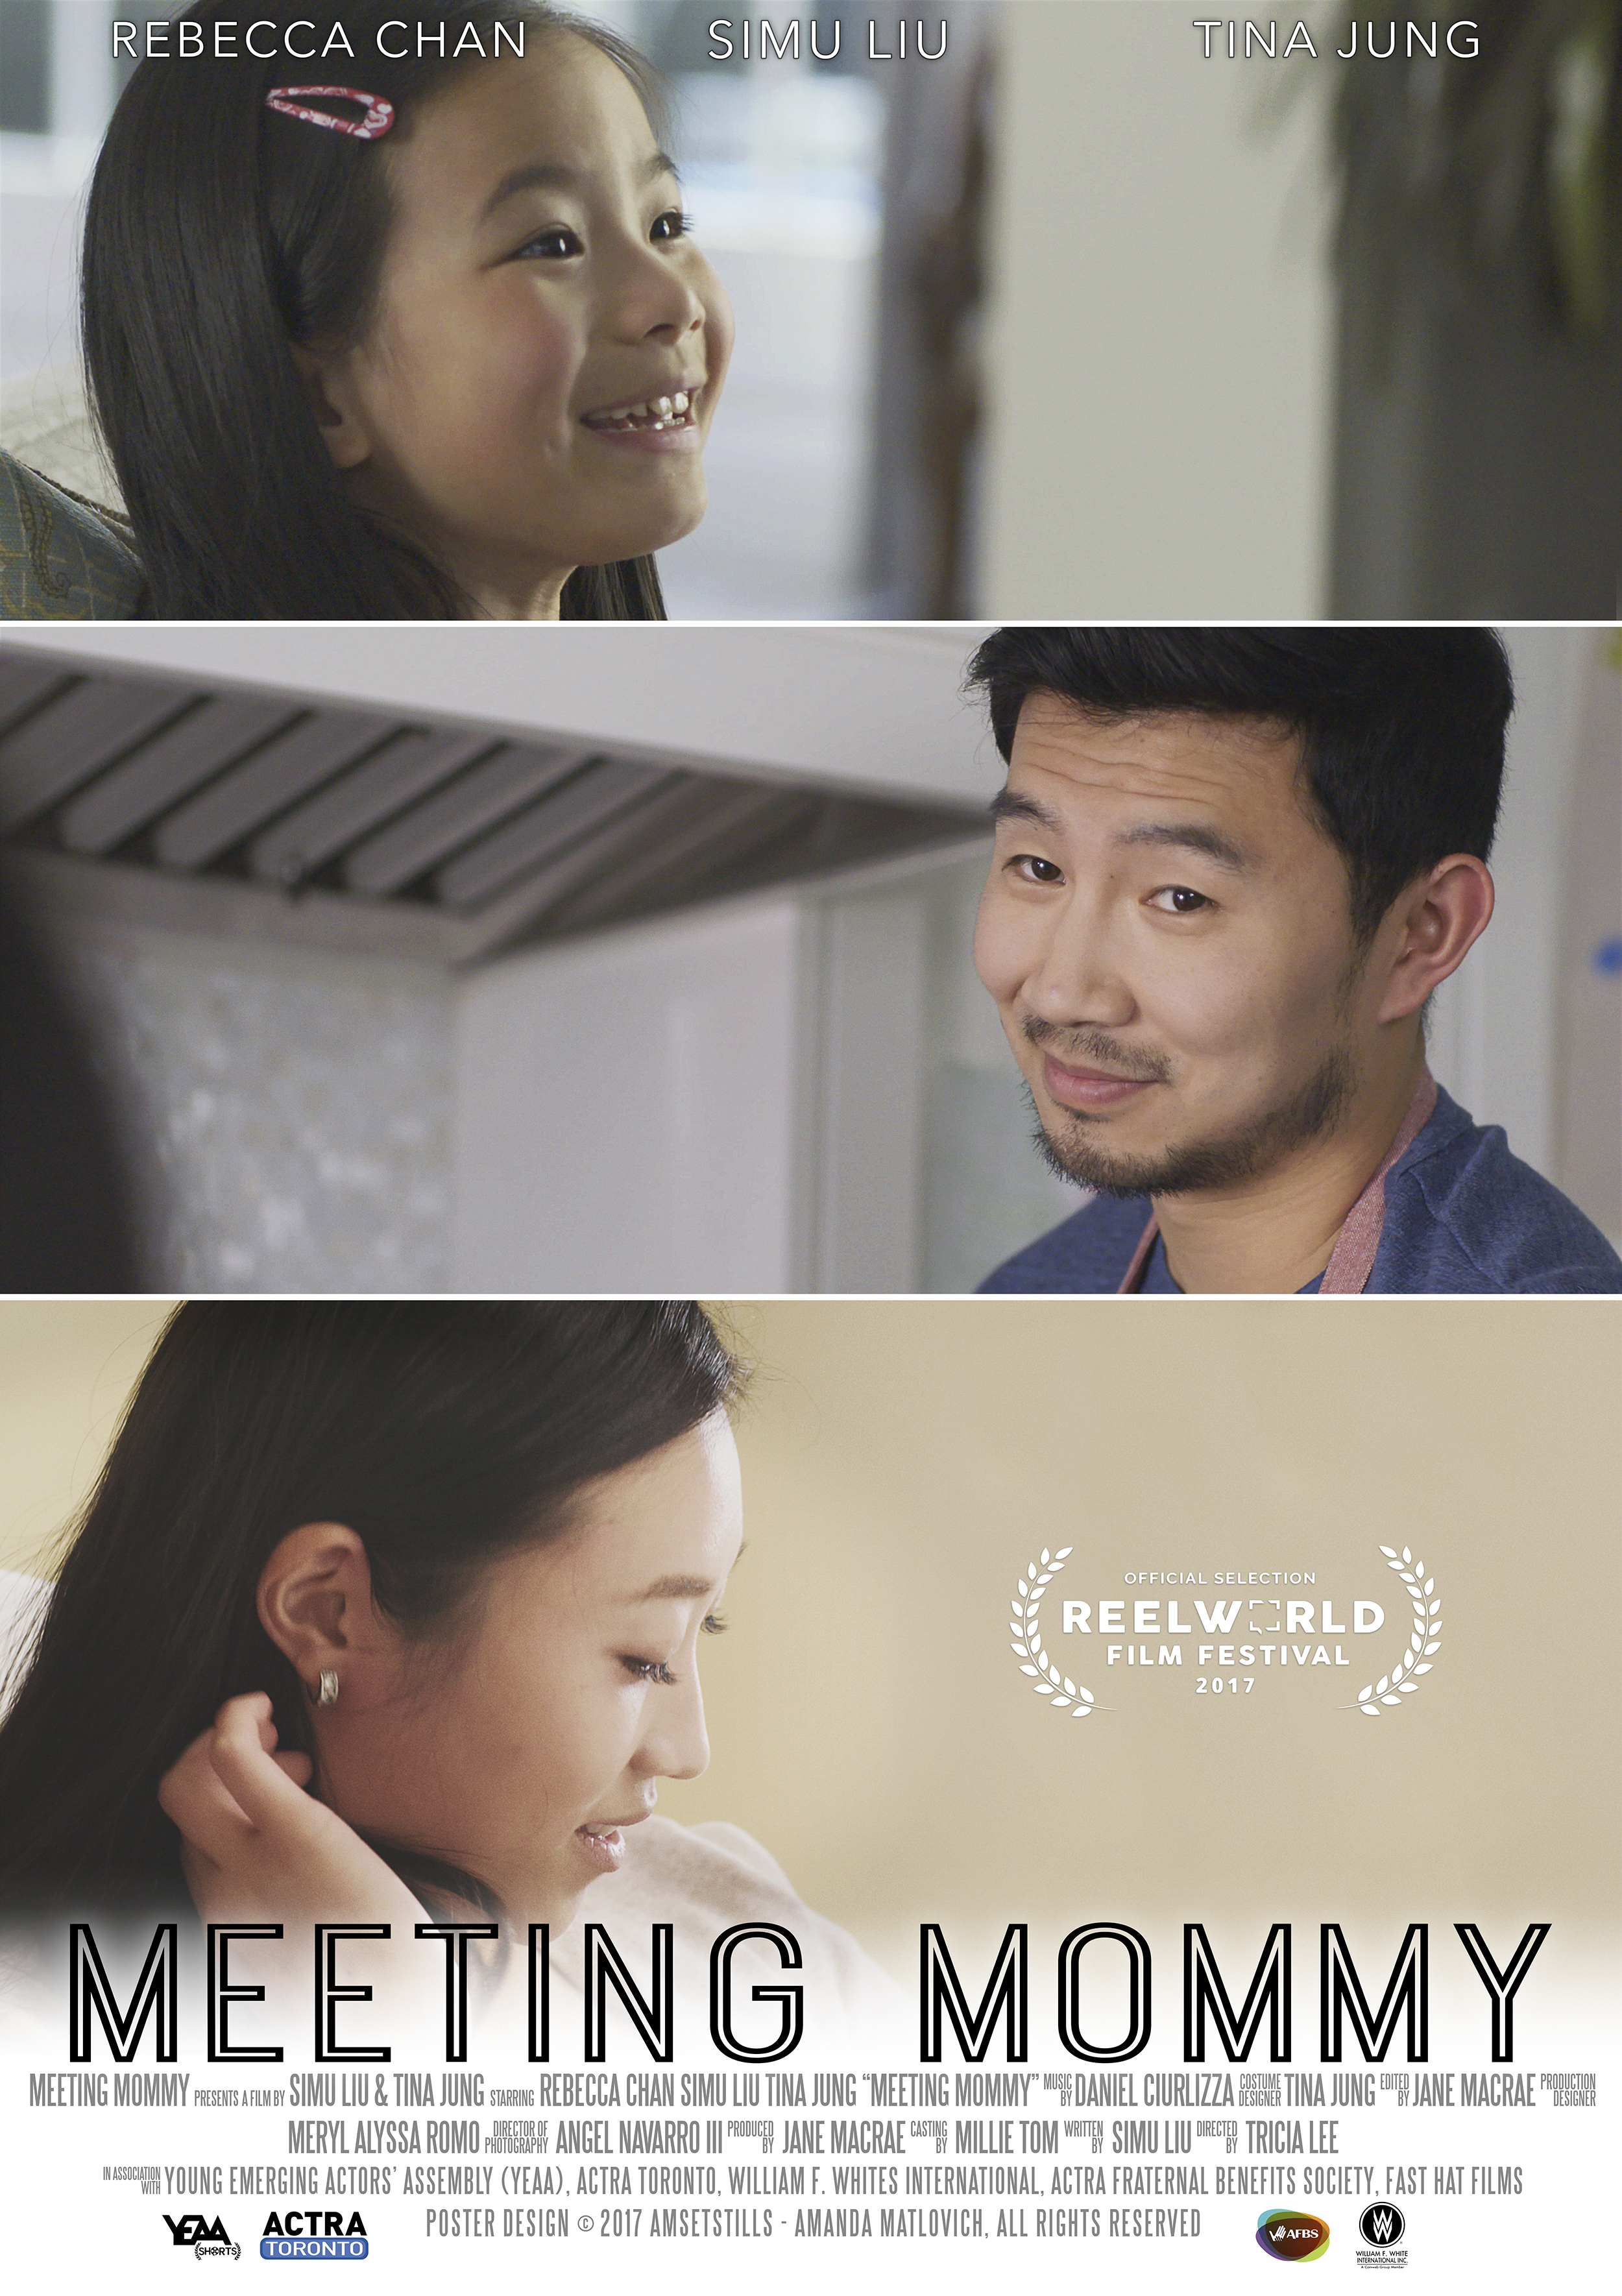 Meeting Mommy Poster - 2017